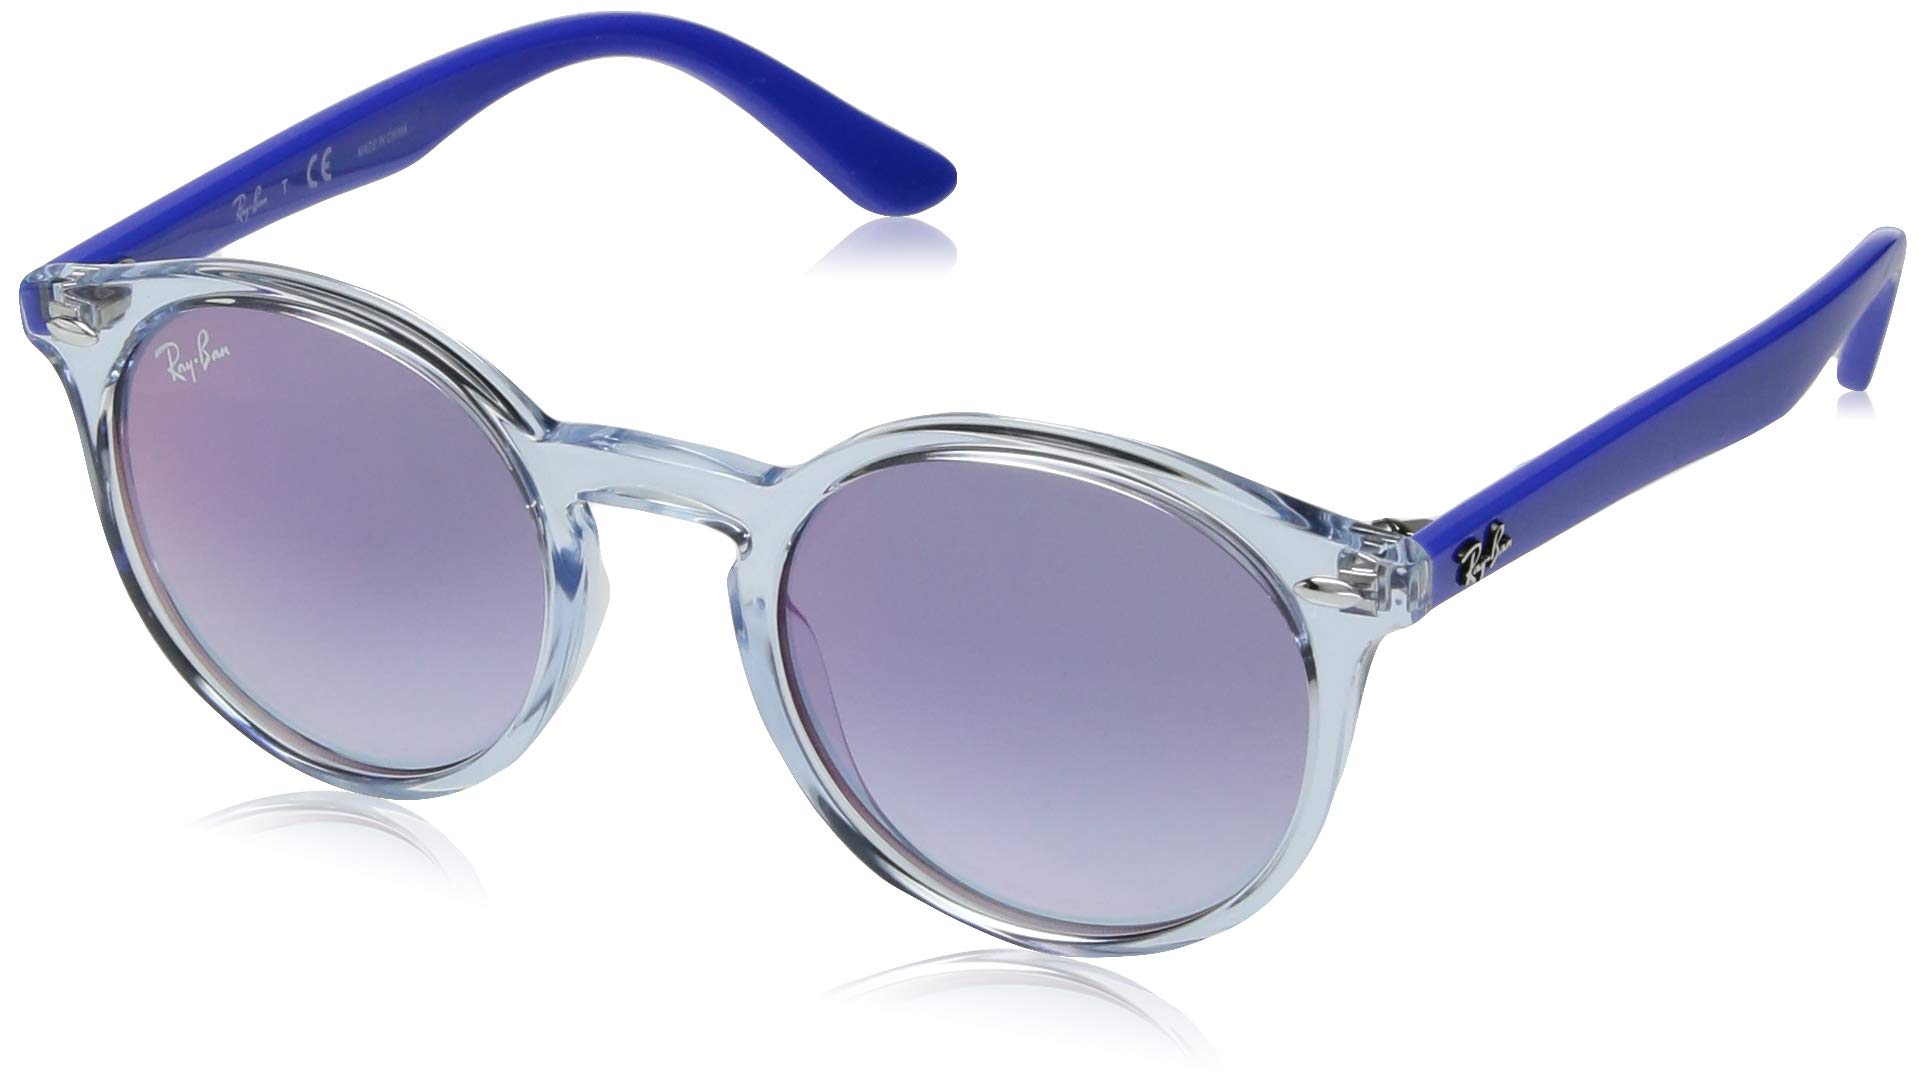 RAY-BAN JUNIOR Kids' RJ9064S Round Kids Sunglasses, Transparent Light Blue/Blue Red Gradient Mirror, 44 mm by RAY-BAN JUNIOR